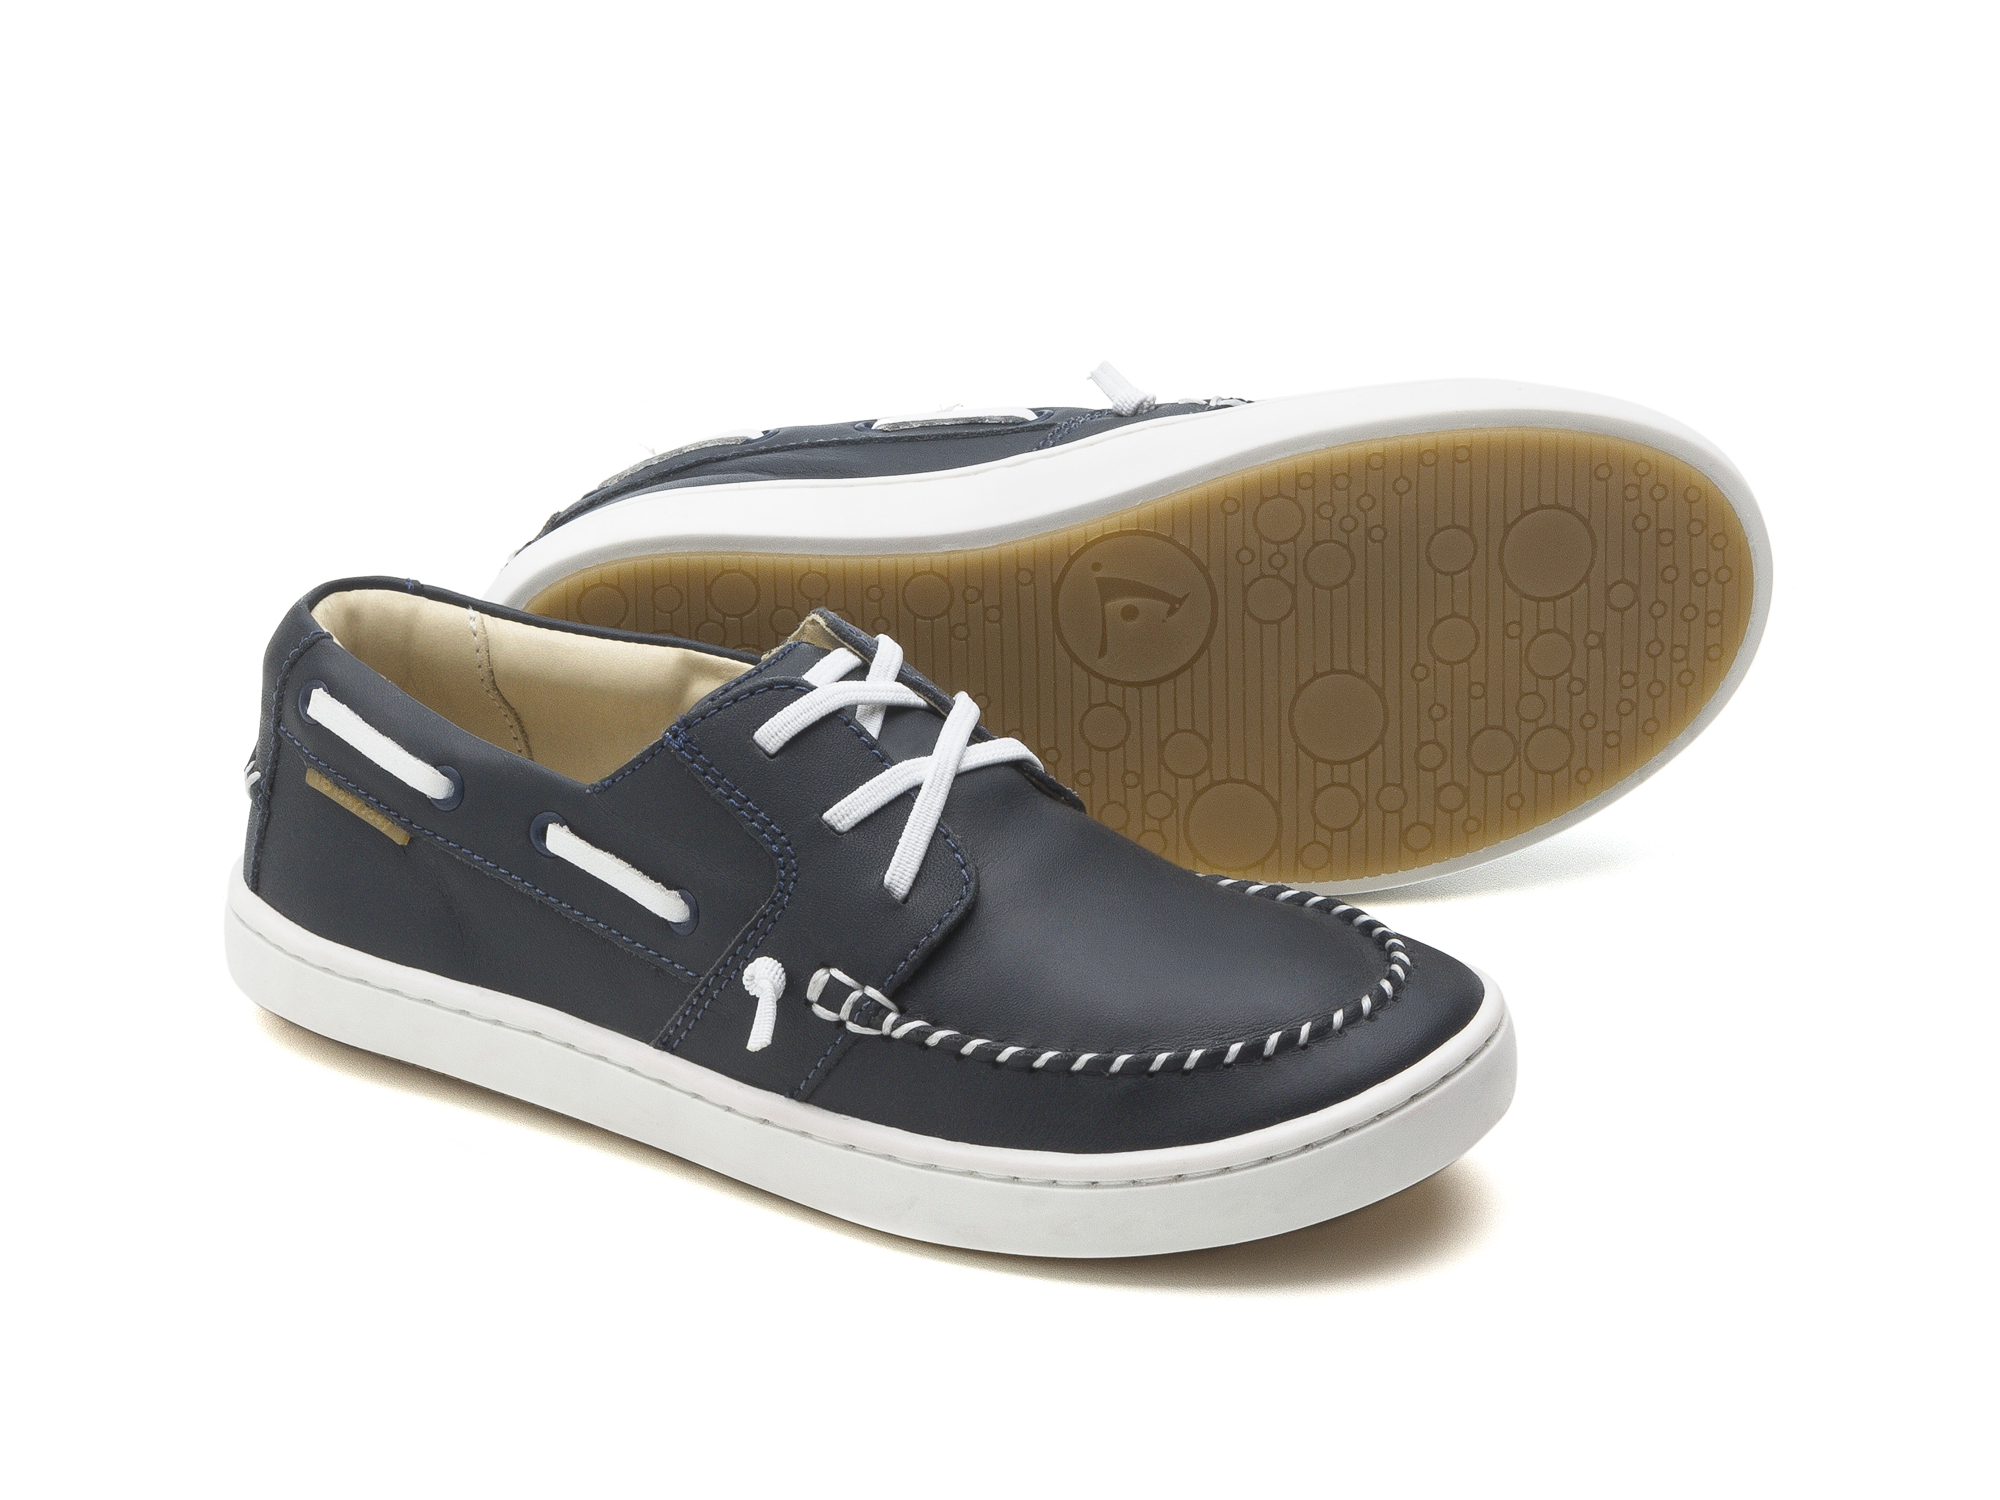 Tênis Snap Navy/ White Junior 4 à 8 anos - 1